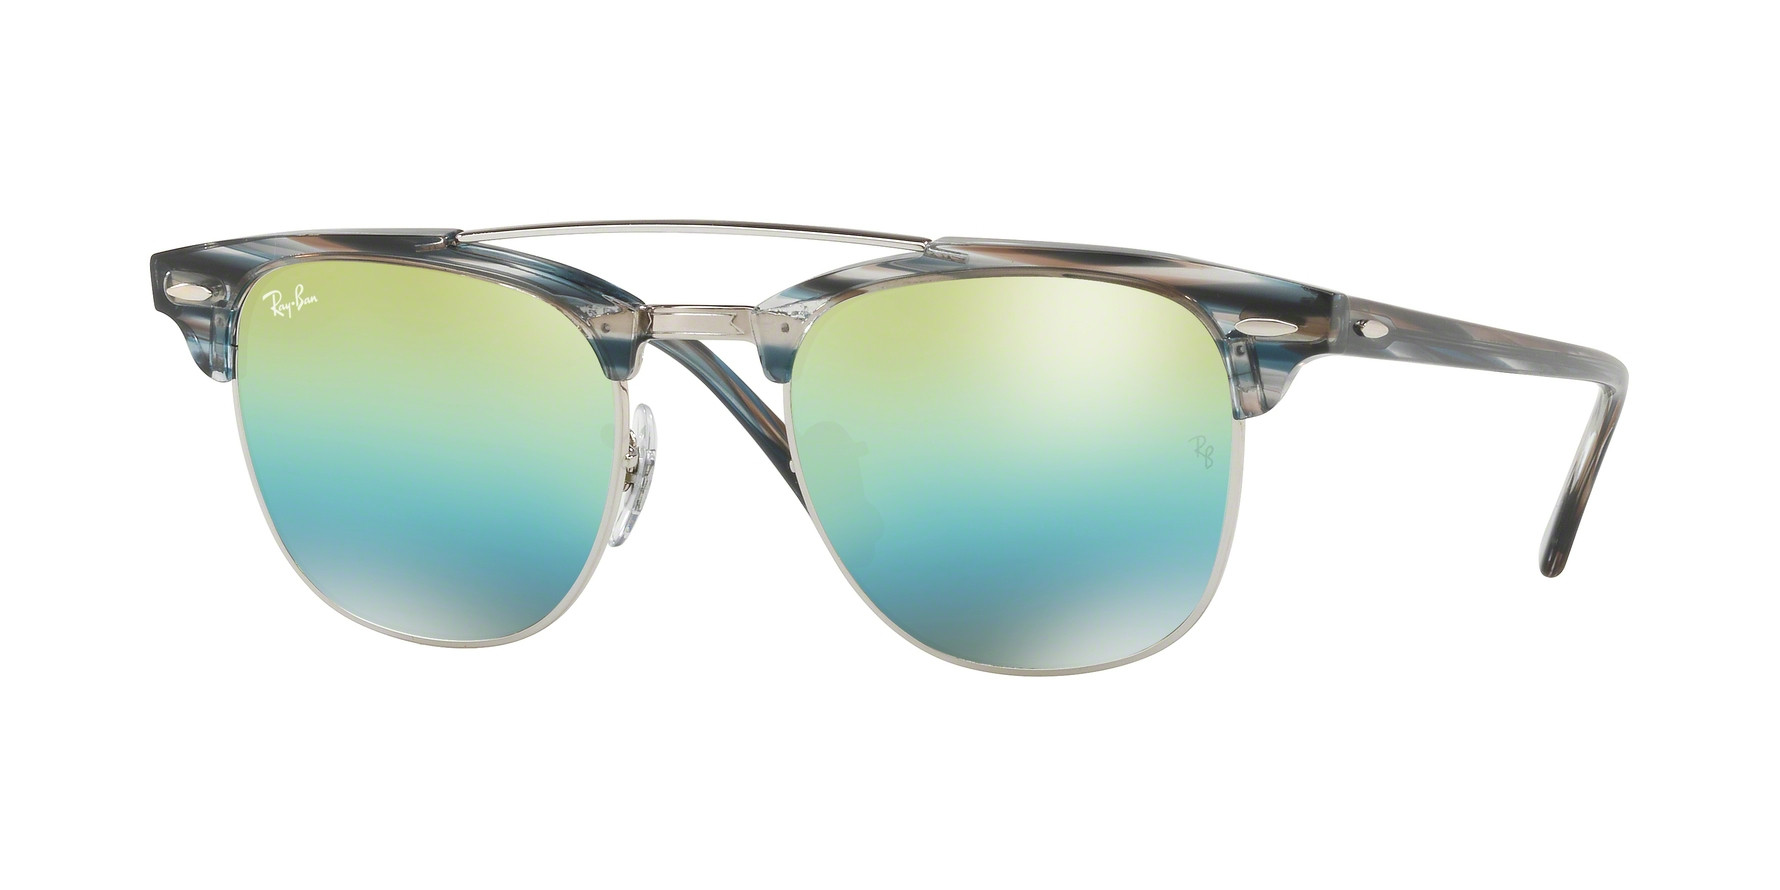 Ray-Ban RB3816 CLUBMASTER DOUBLEBRIDGE Sunglasses - Ray-Ban Authorized Retailer | coolframes.ca